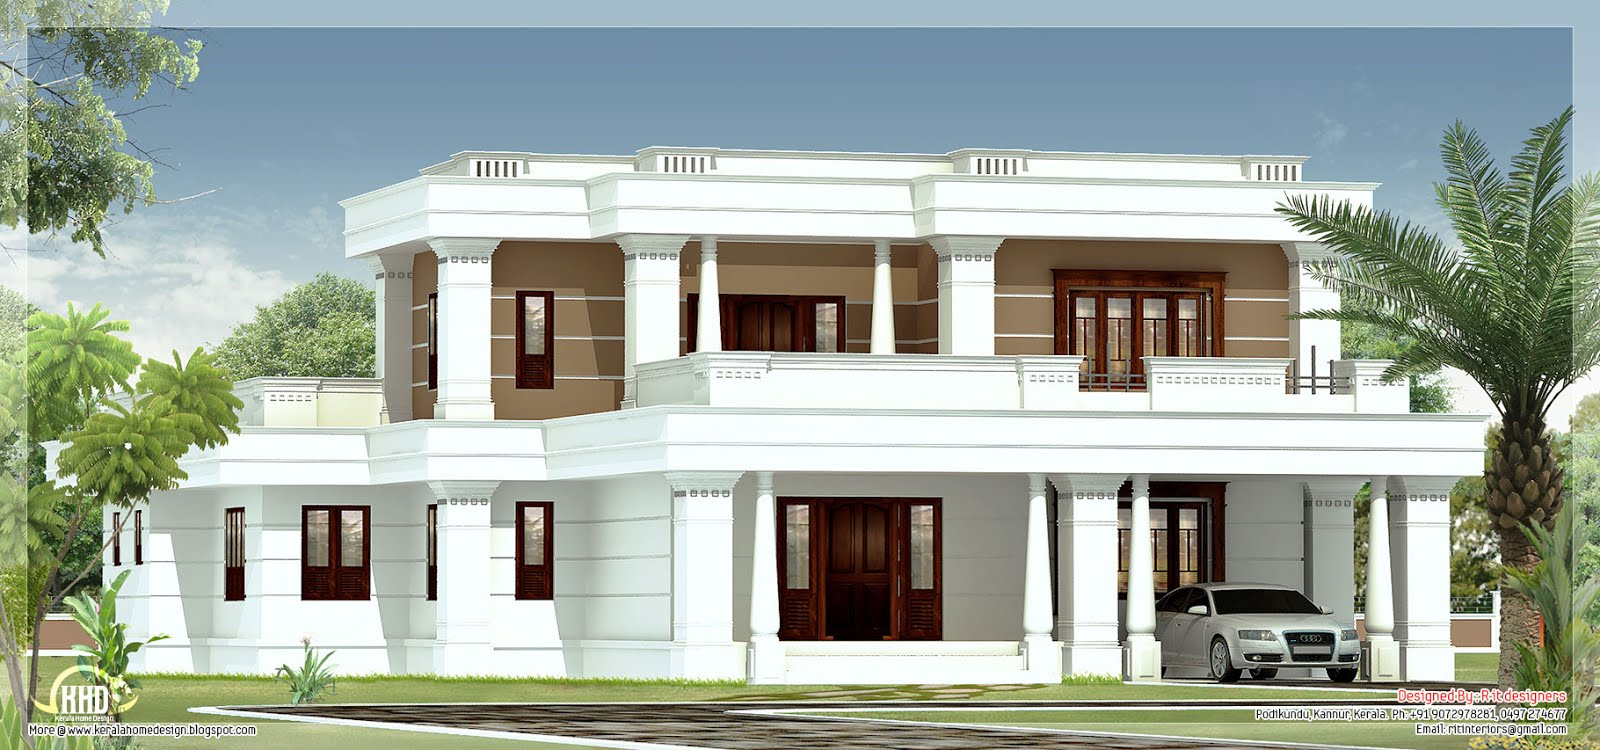 Square meter villa design kerala home trend home design and decor